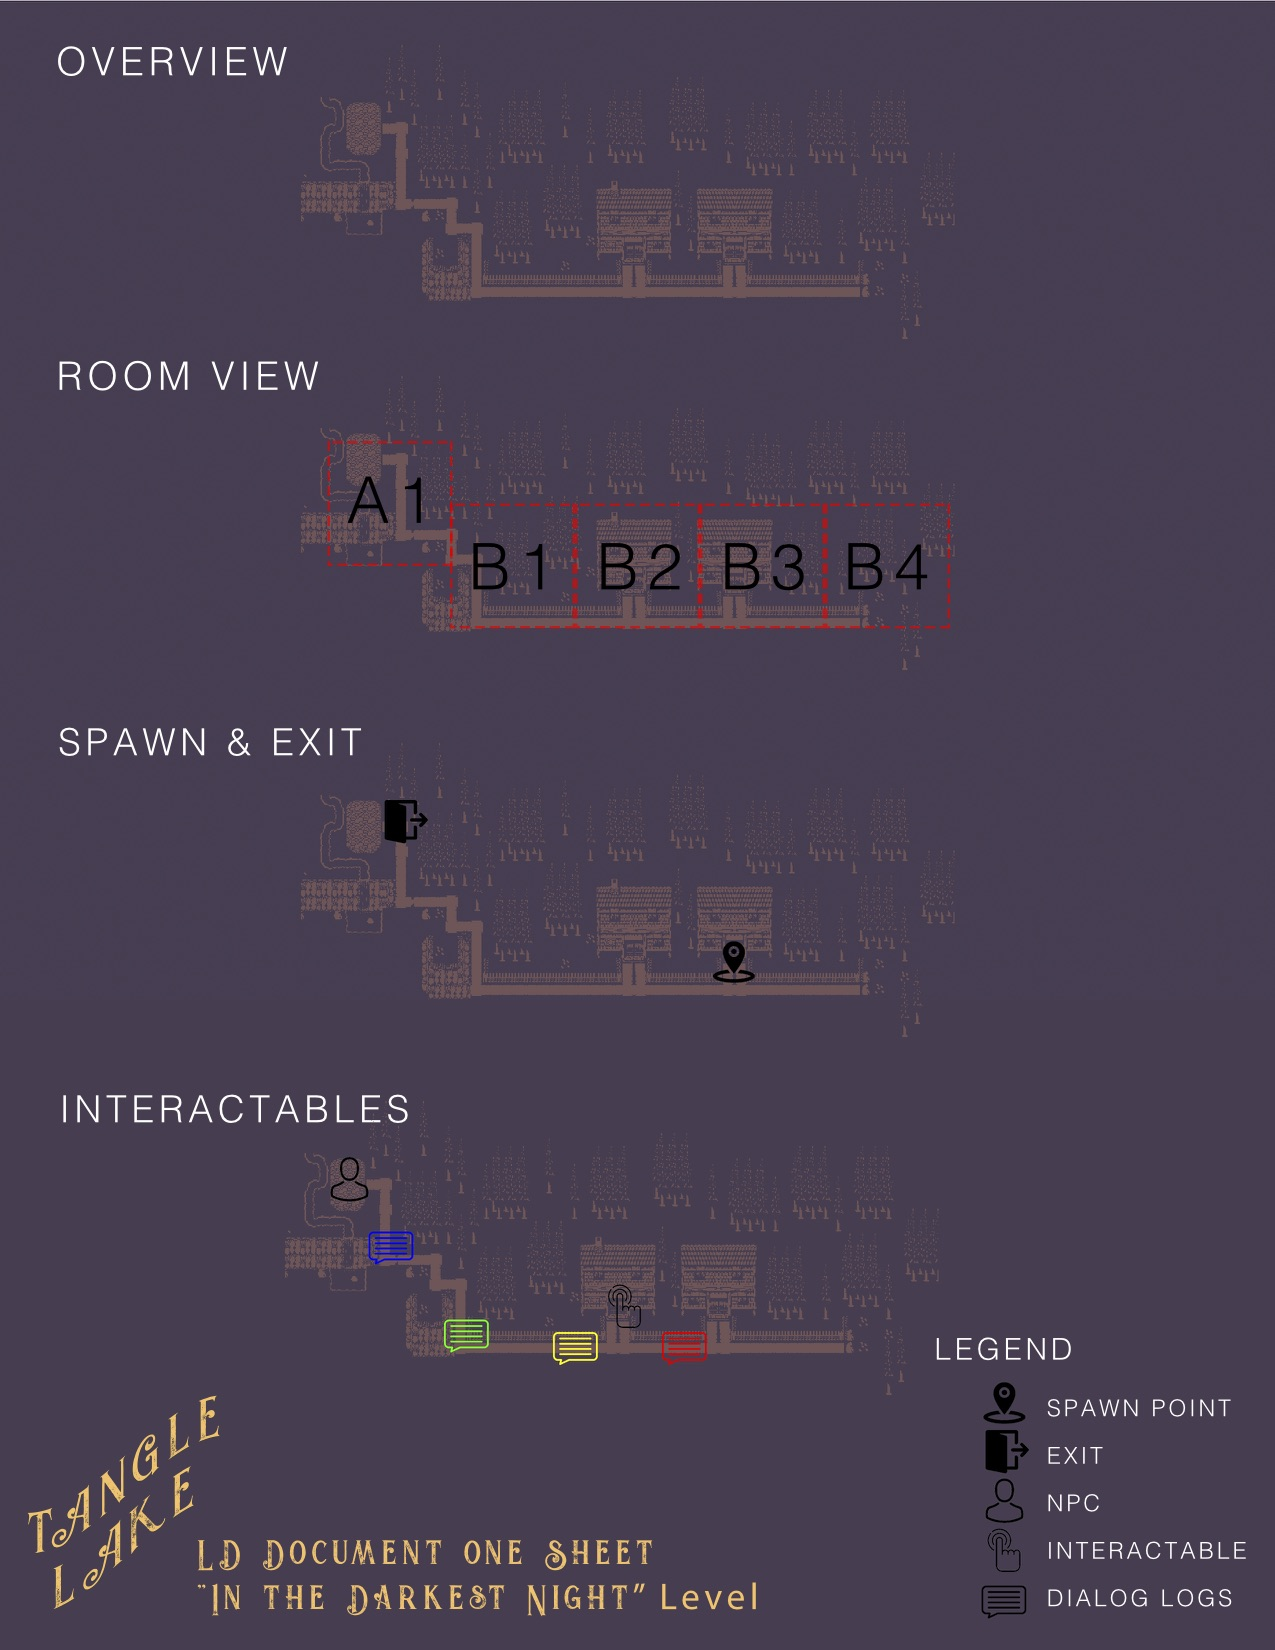 """Level Design One Sheet for the """"In the Darkest Night"""" Level"""